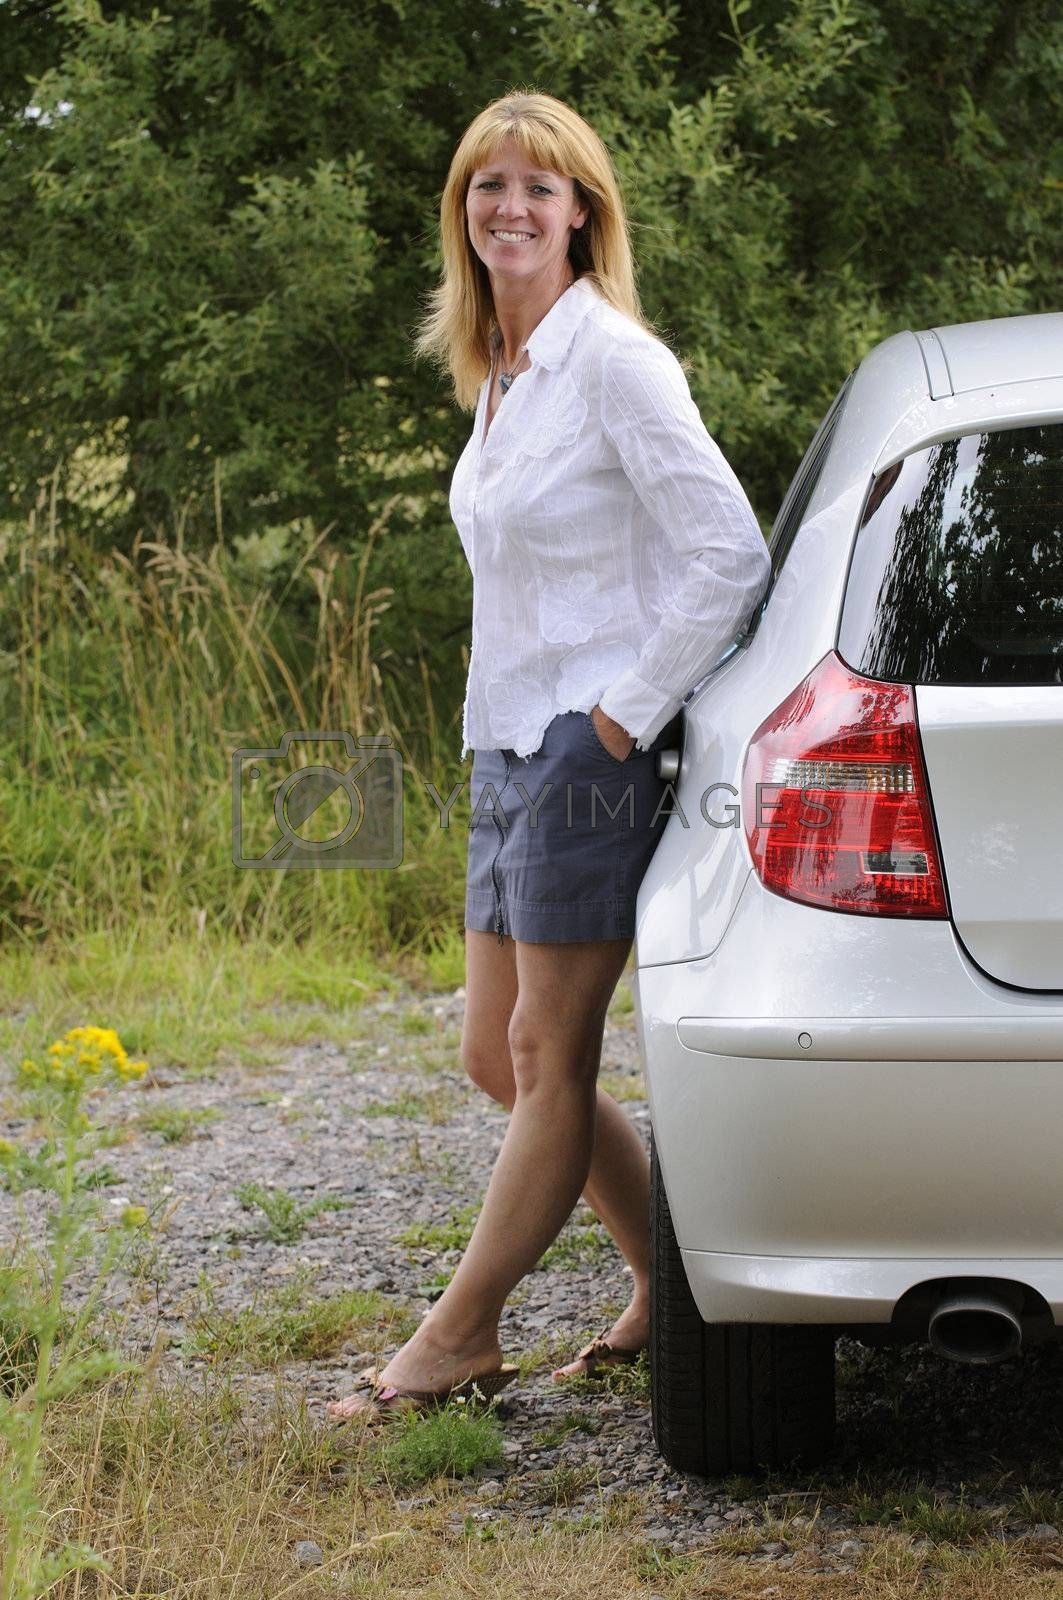 Mature woman wearing a white shirt and skirt leaning on a car